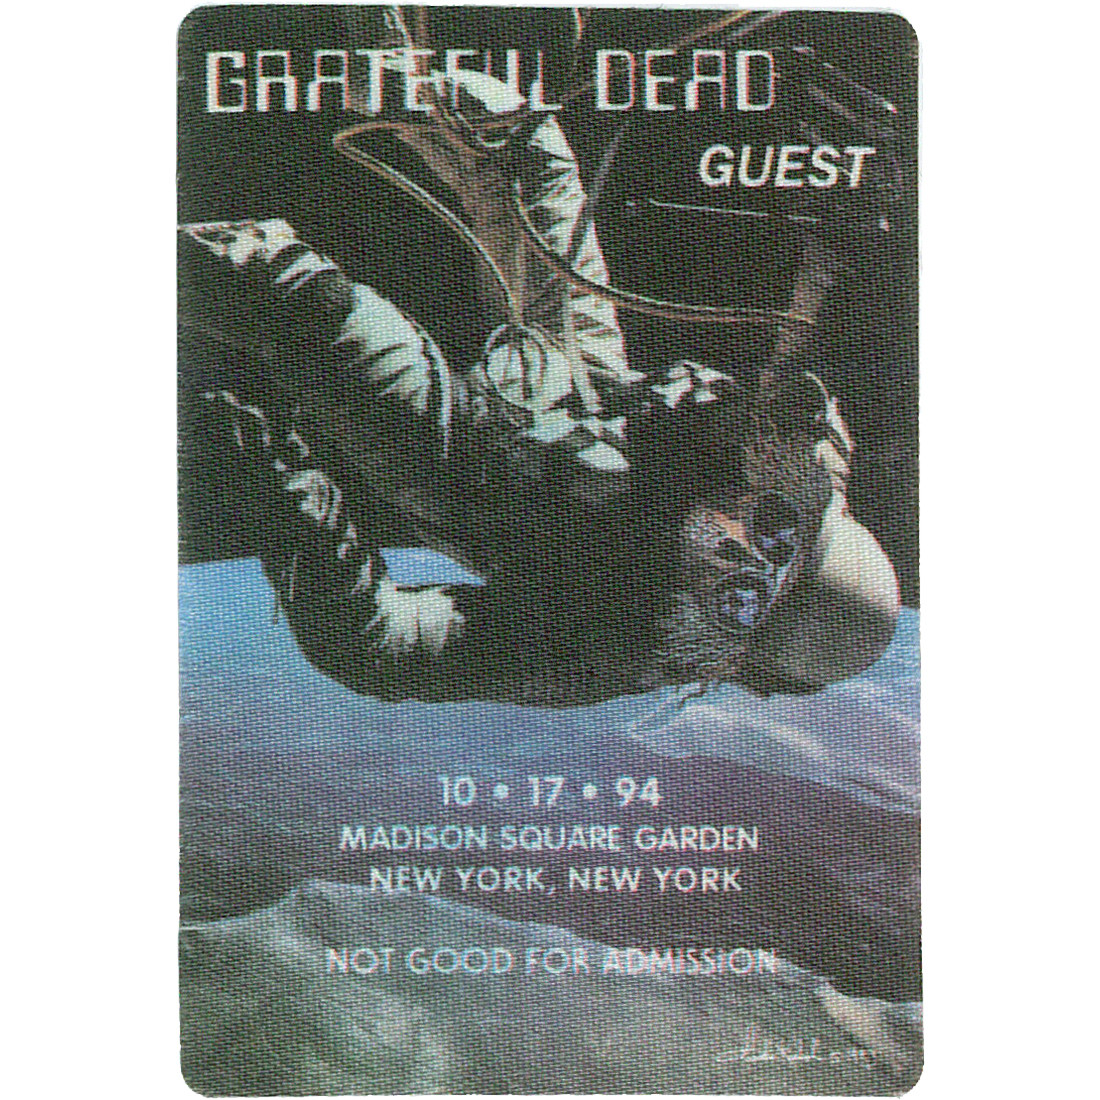 Grateful Dead 1994 10-17 Backstage Pass